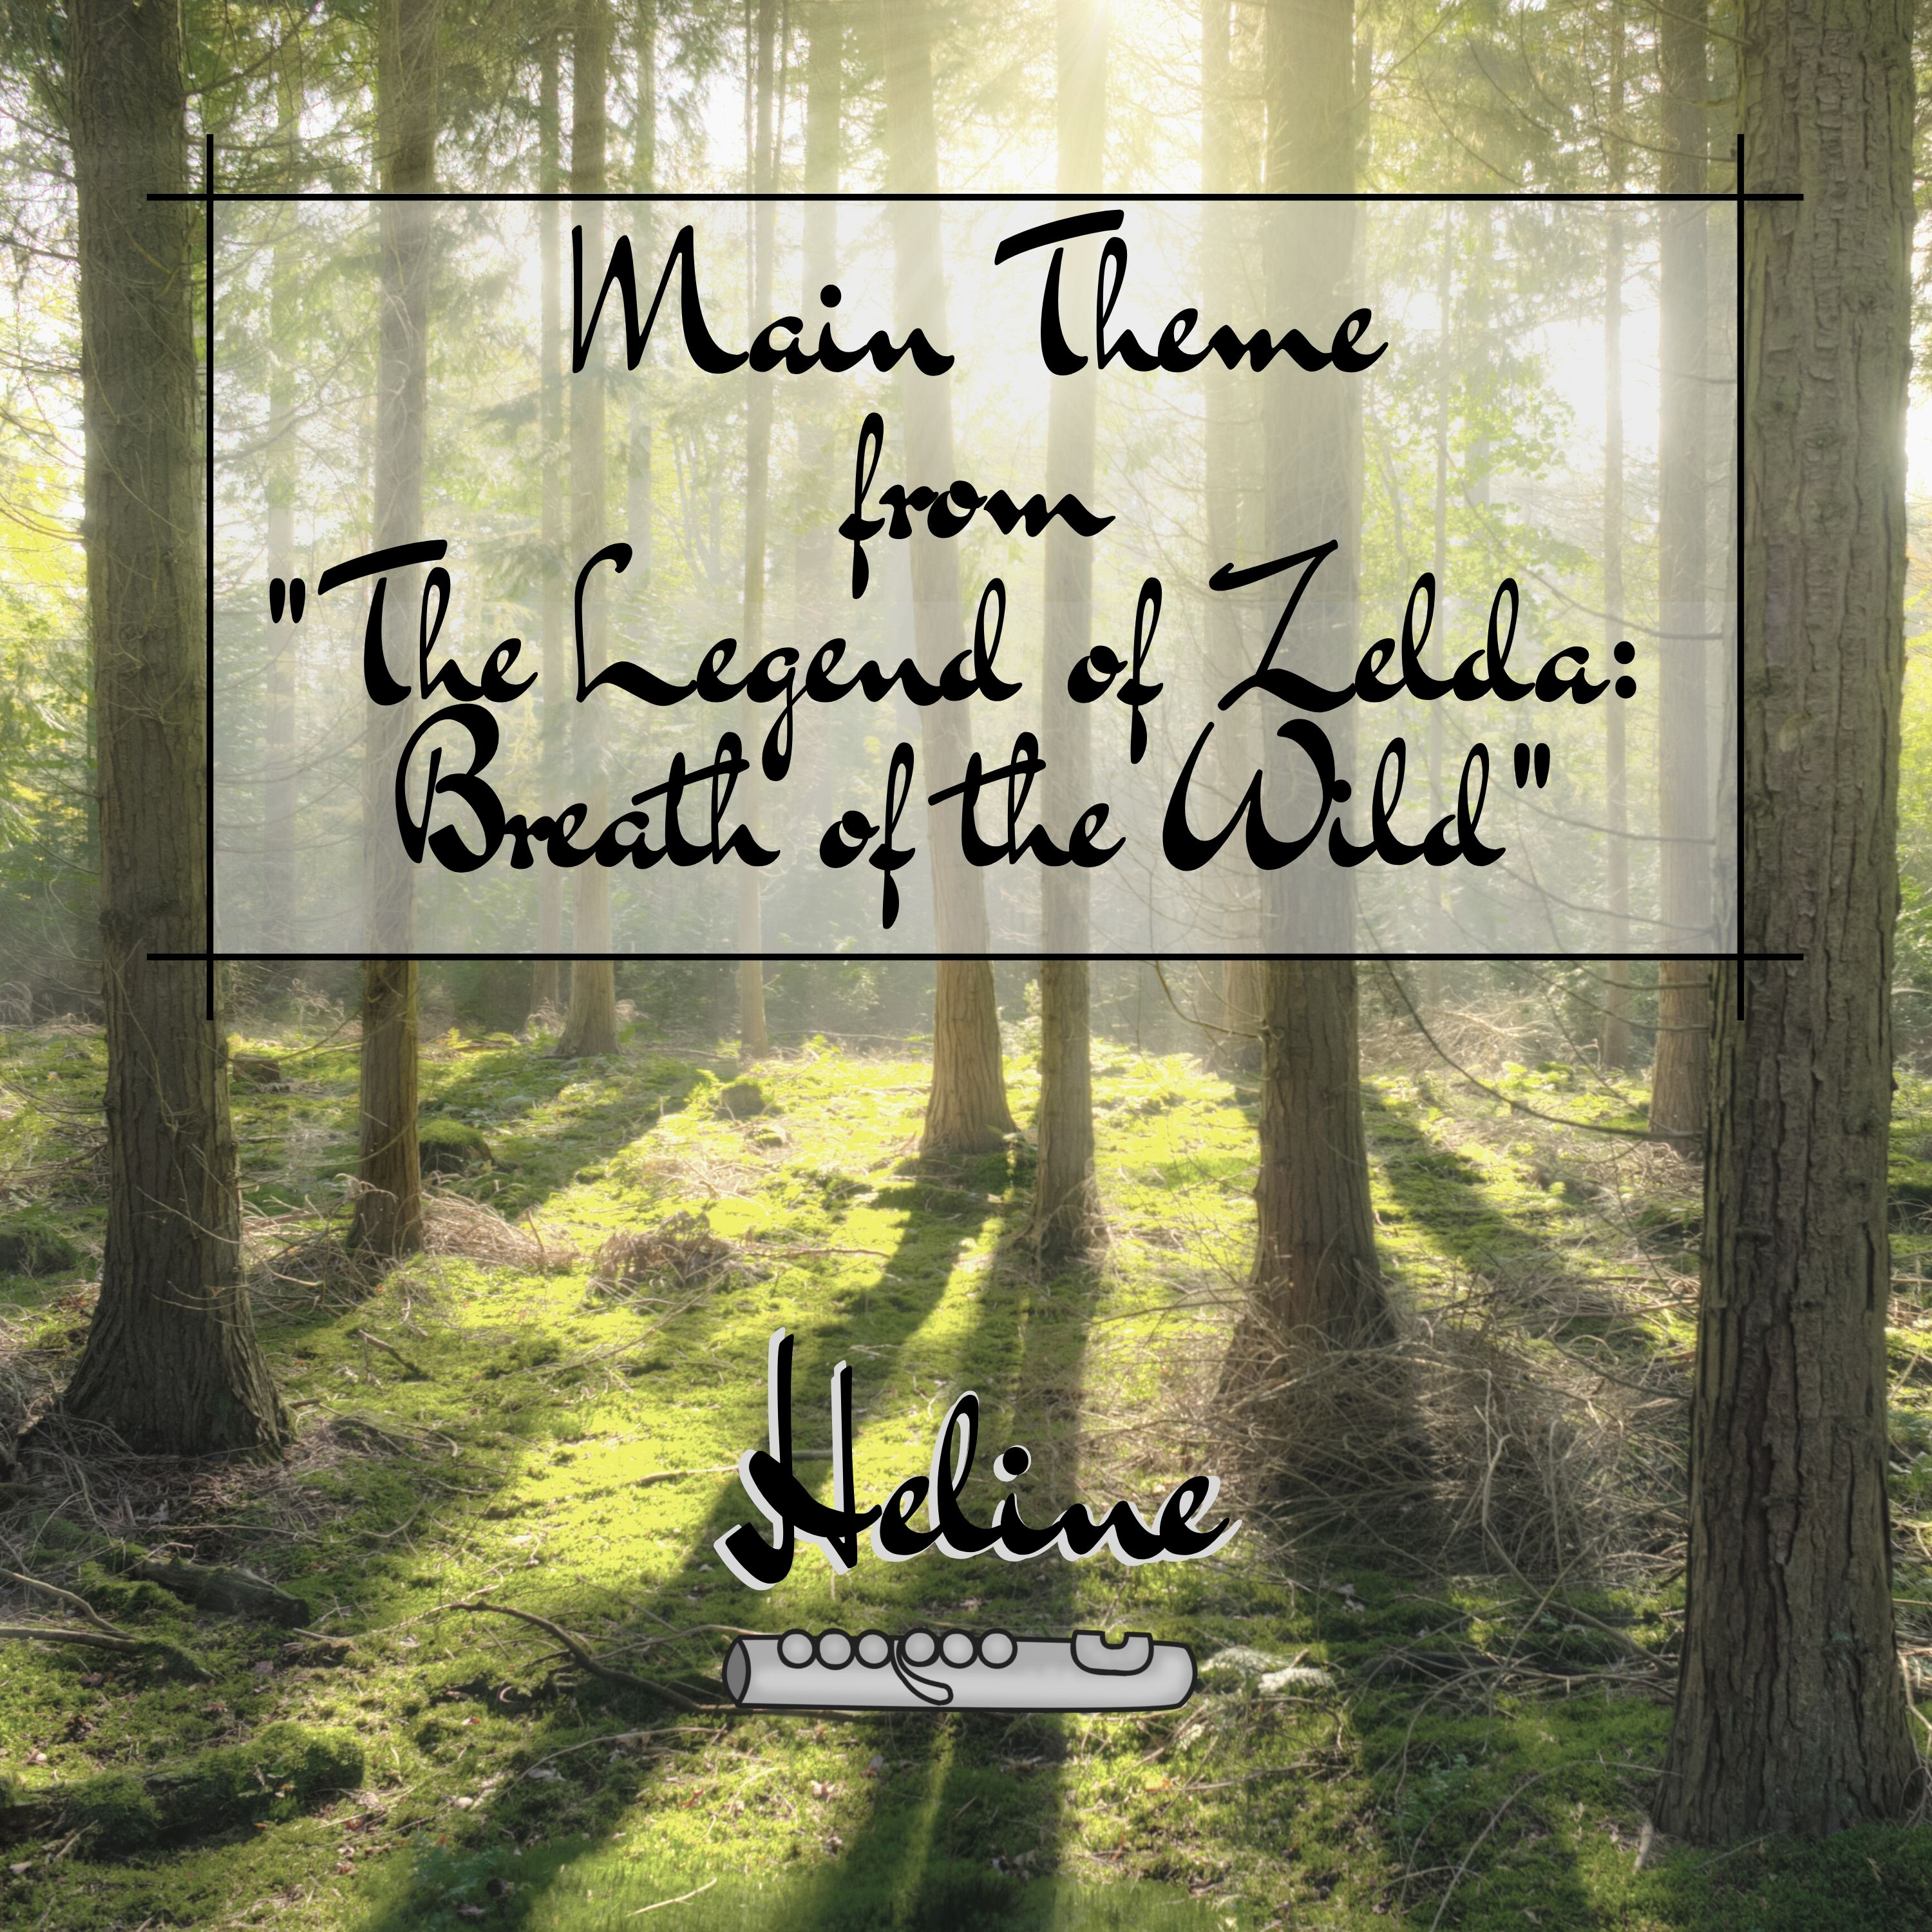 """Main Theme (From """"The Legend of Zelda: Breath of the Wild"""") Image"""